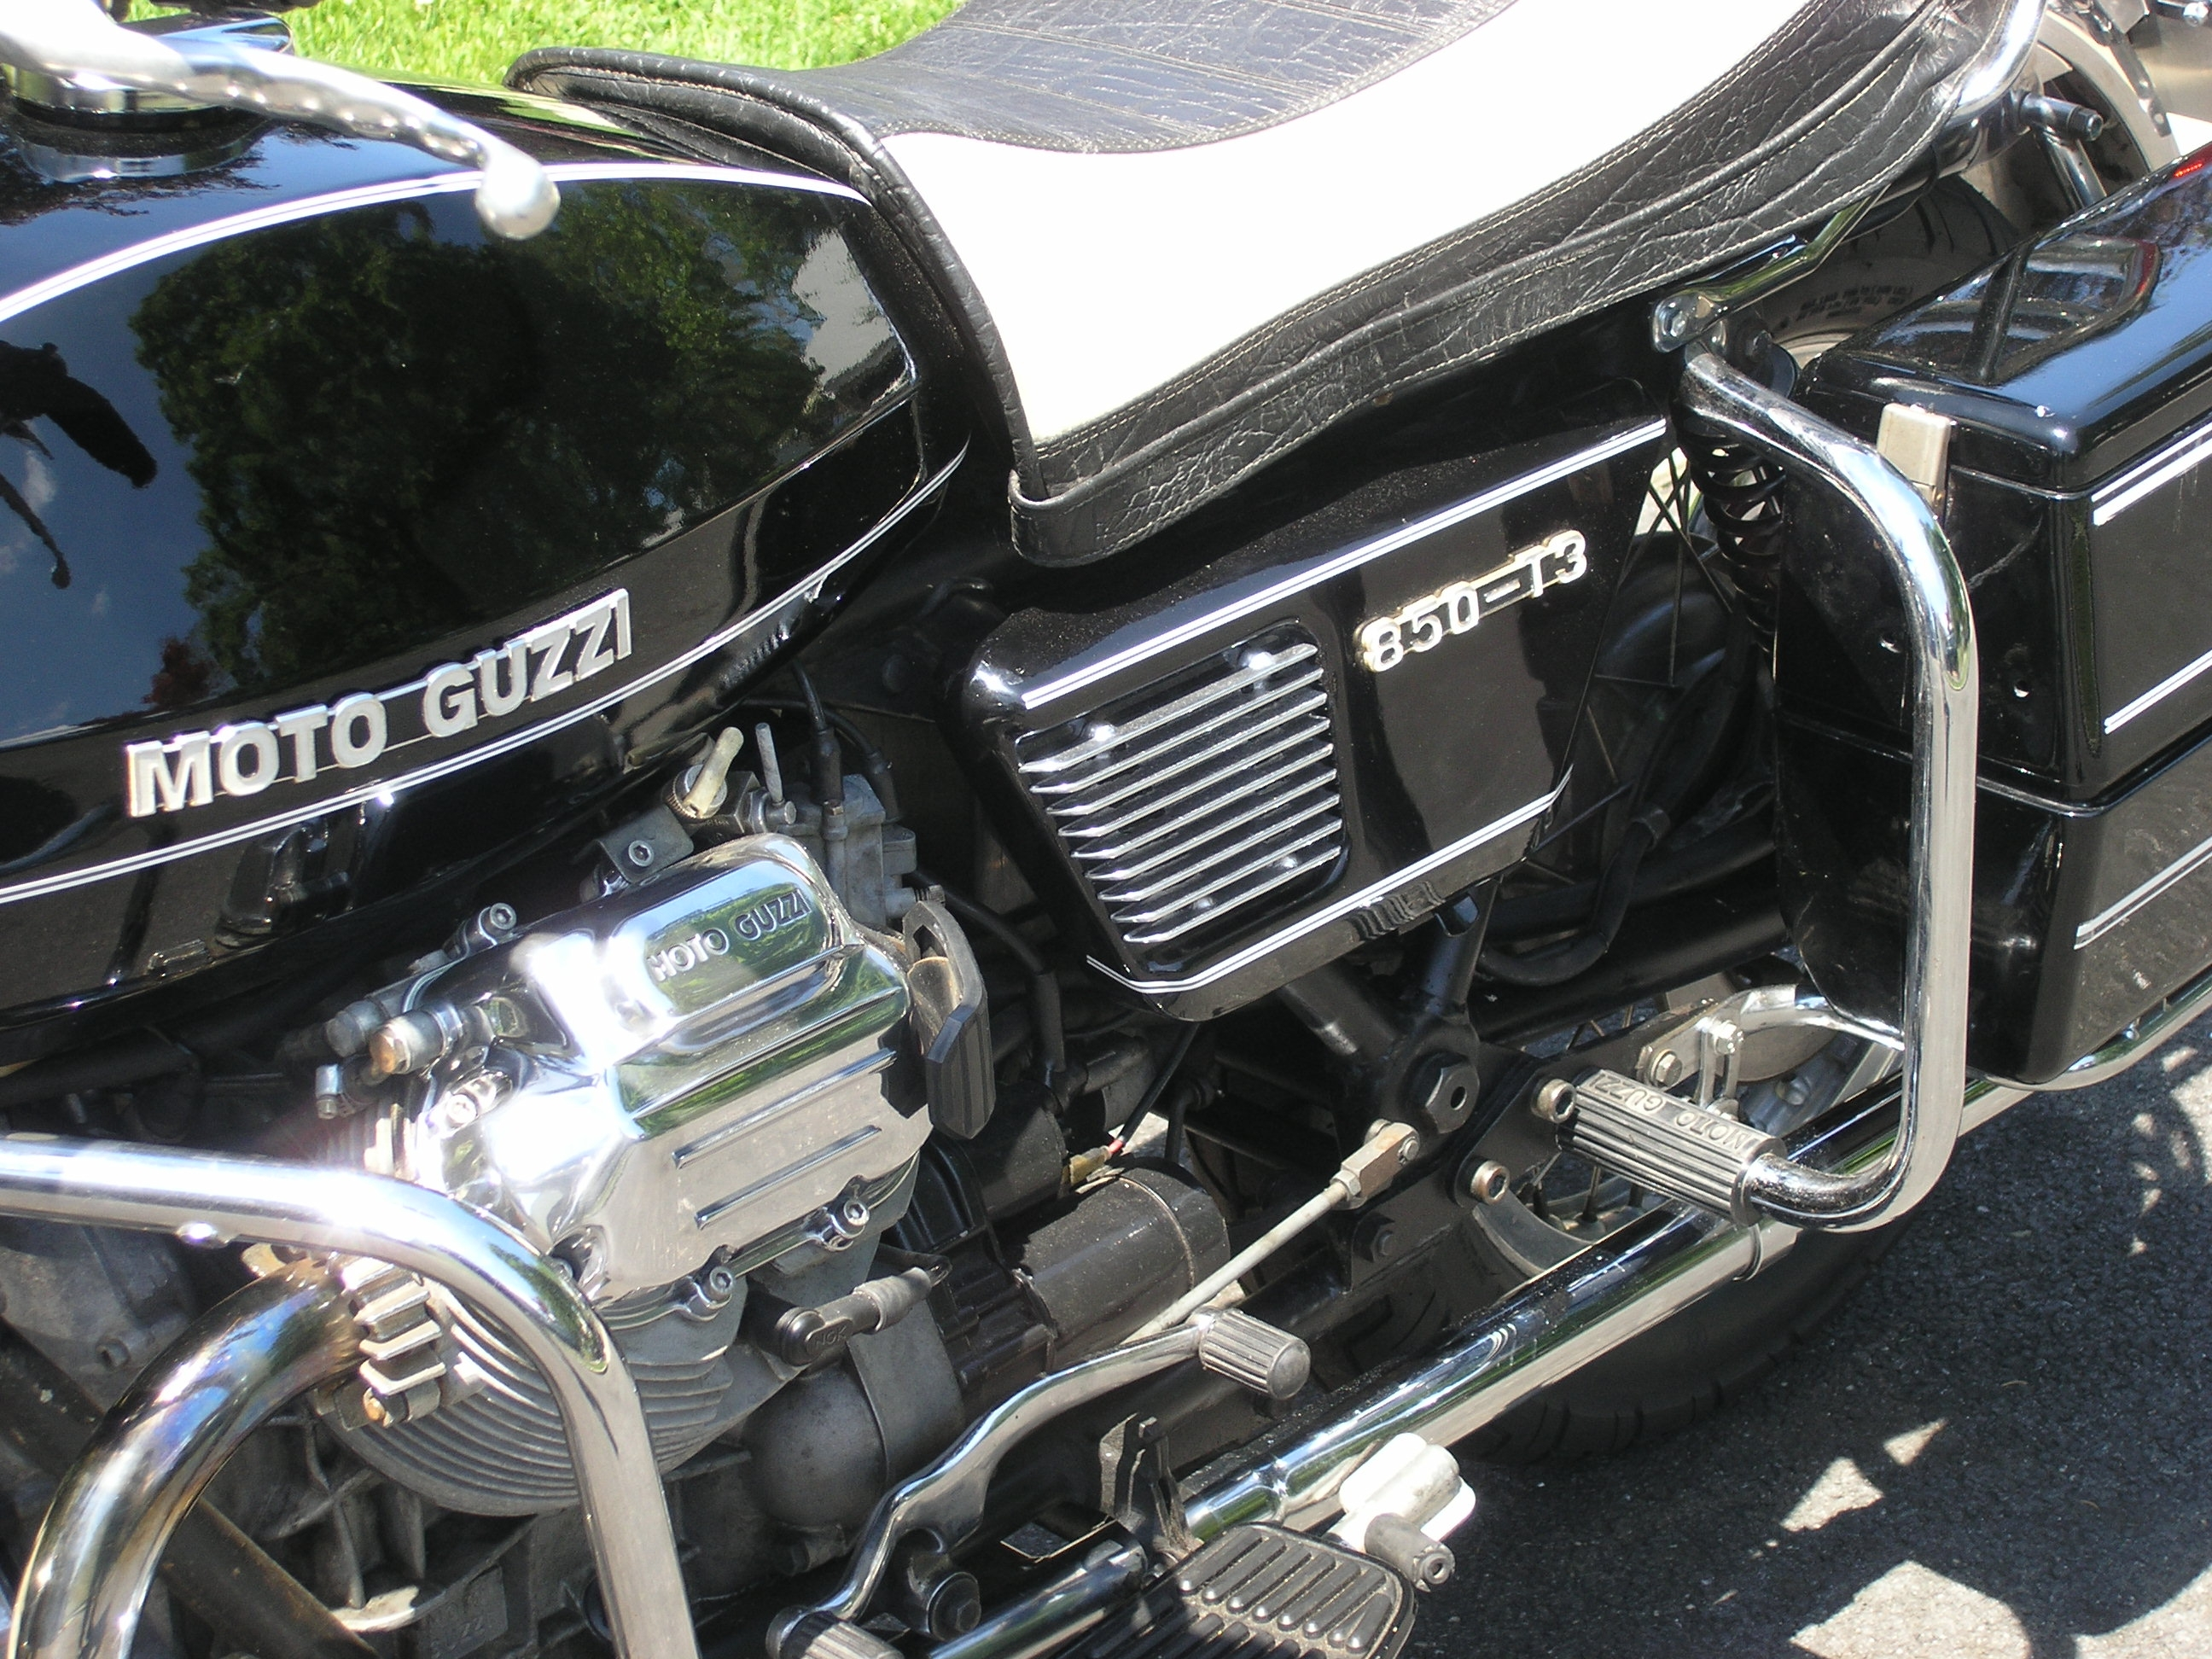 MOTO+GUZZI+GRILLS.JPG+CLOSE.JPG